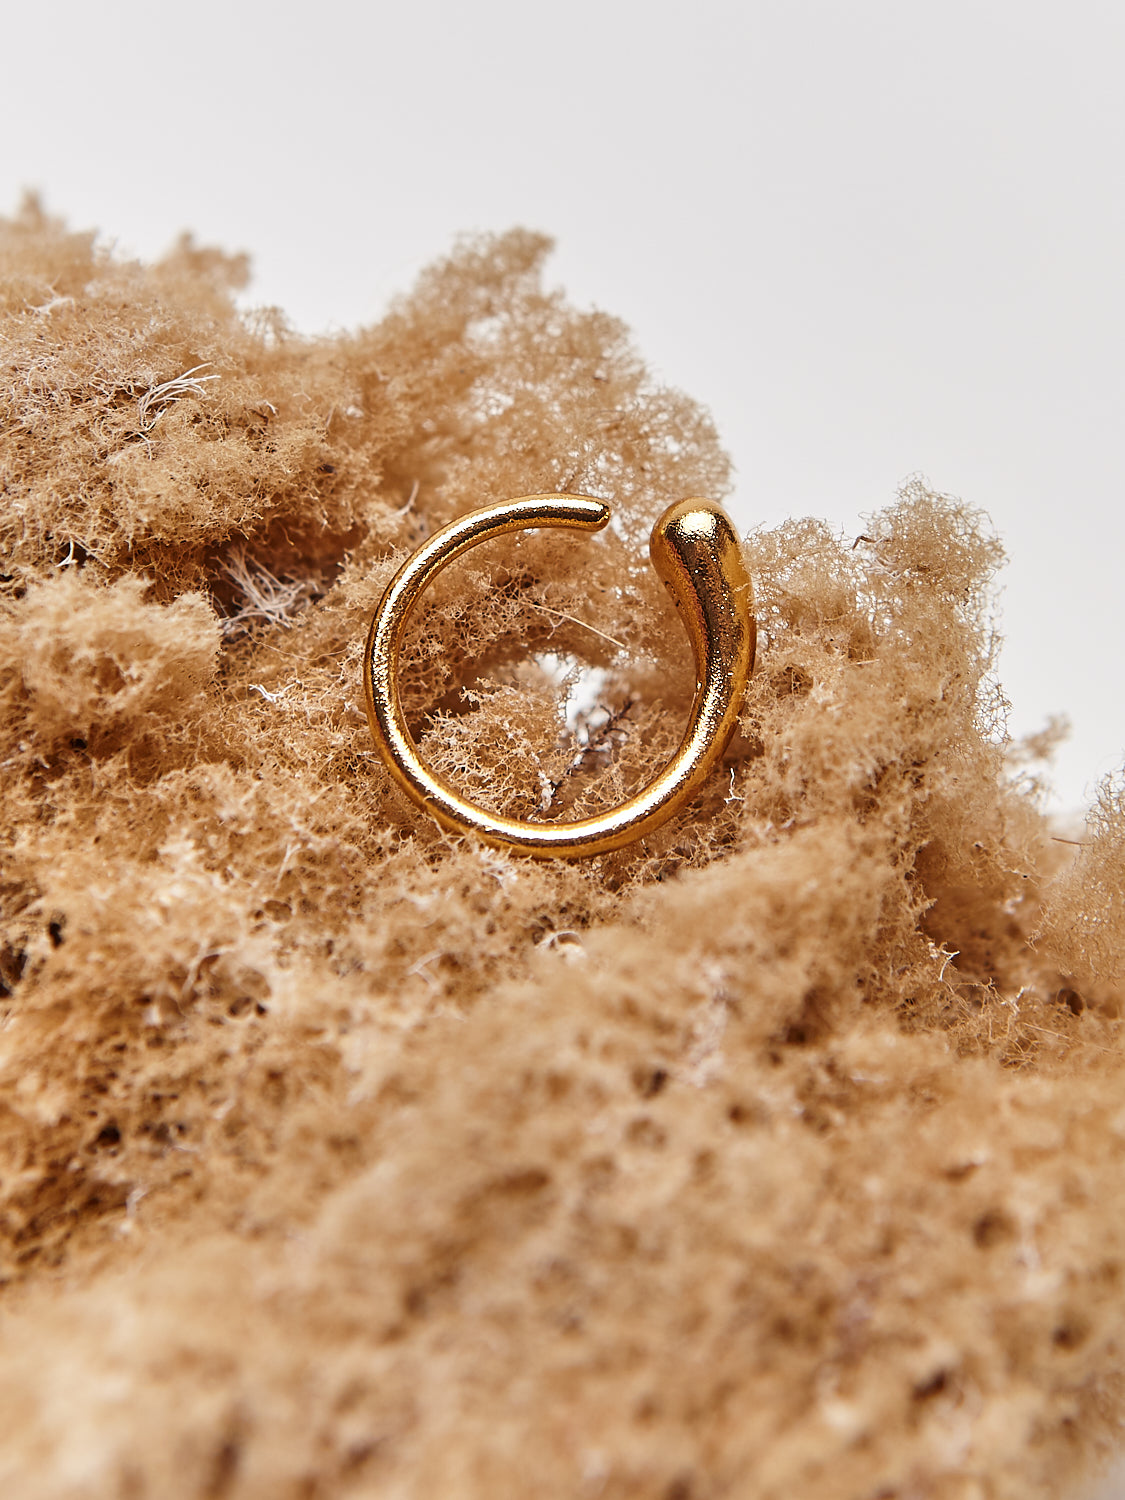 detail shot of gold ring